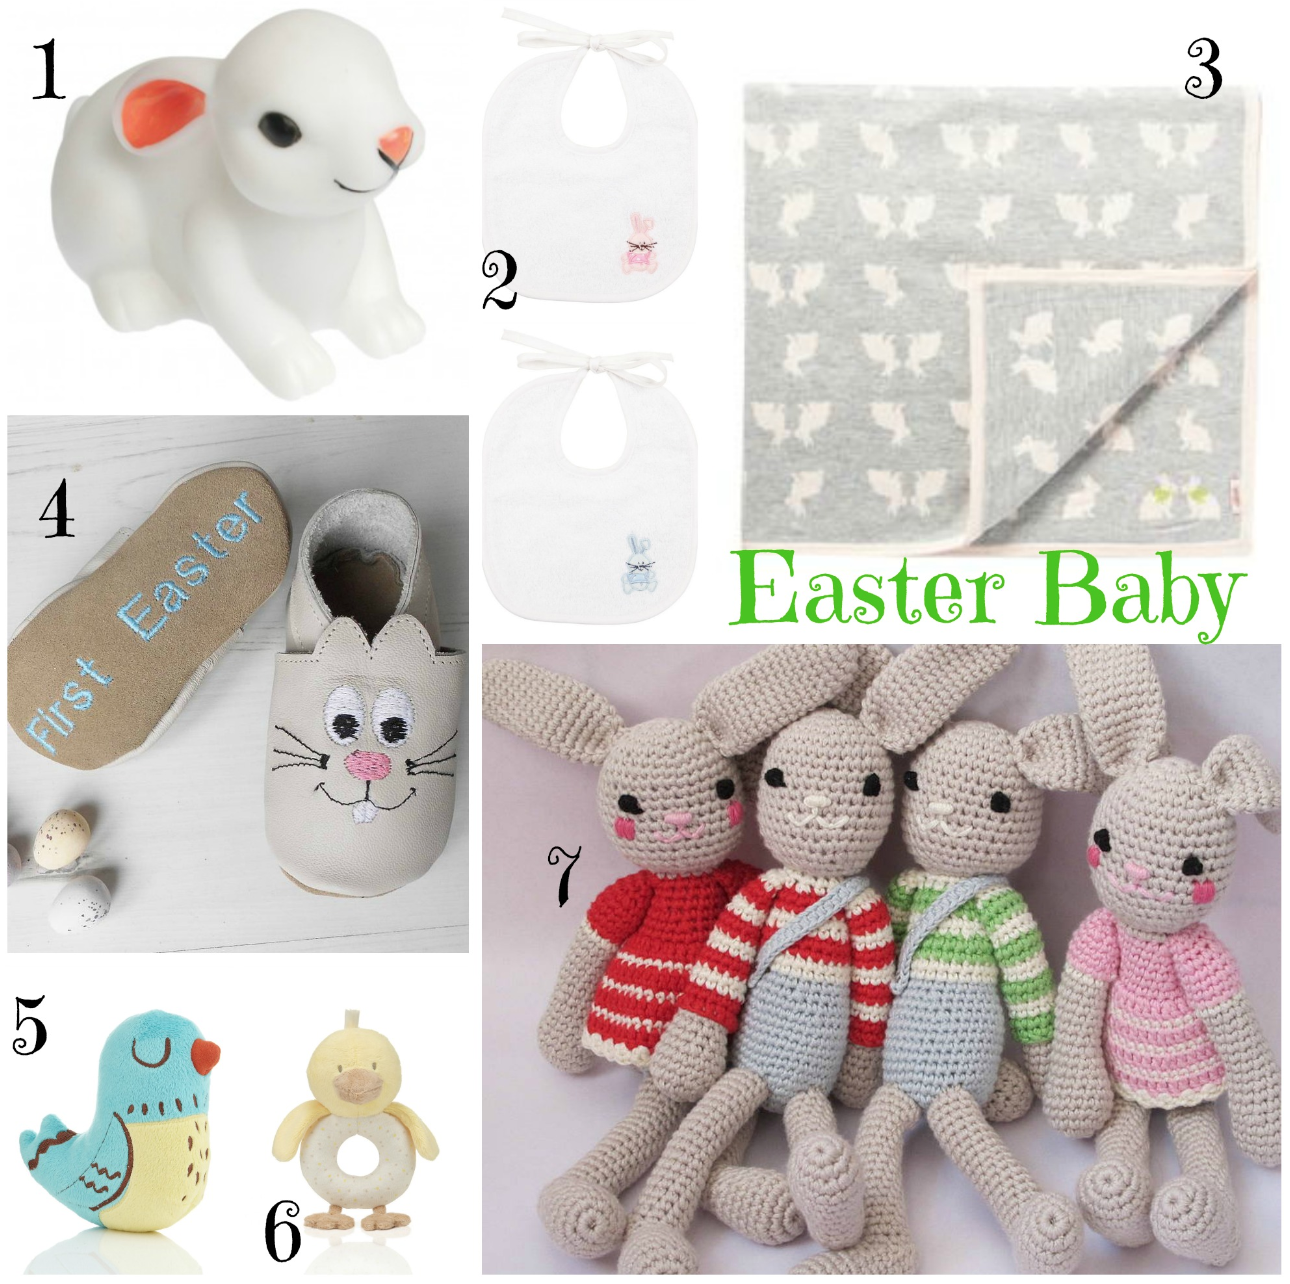 Cracking easter gifts for a springtime baby v i buys mamas vib cracking easter gifts for a springtime baby v i buys negle Images